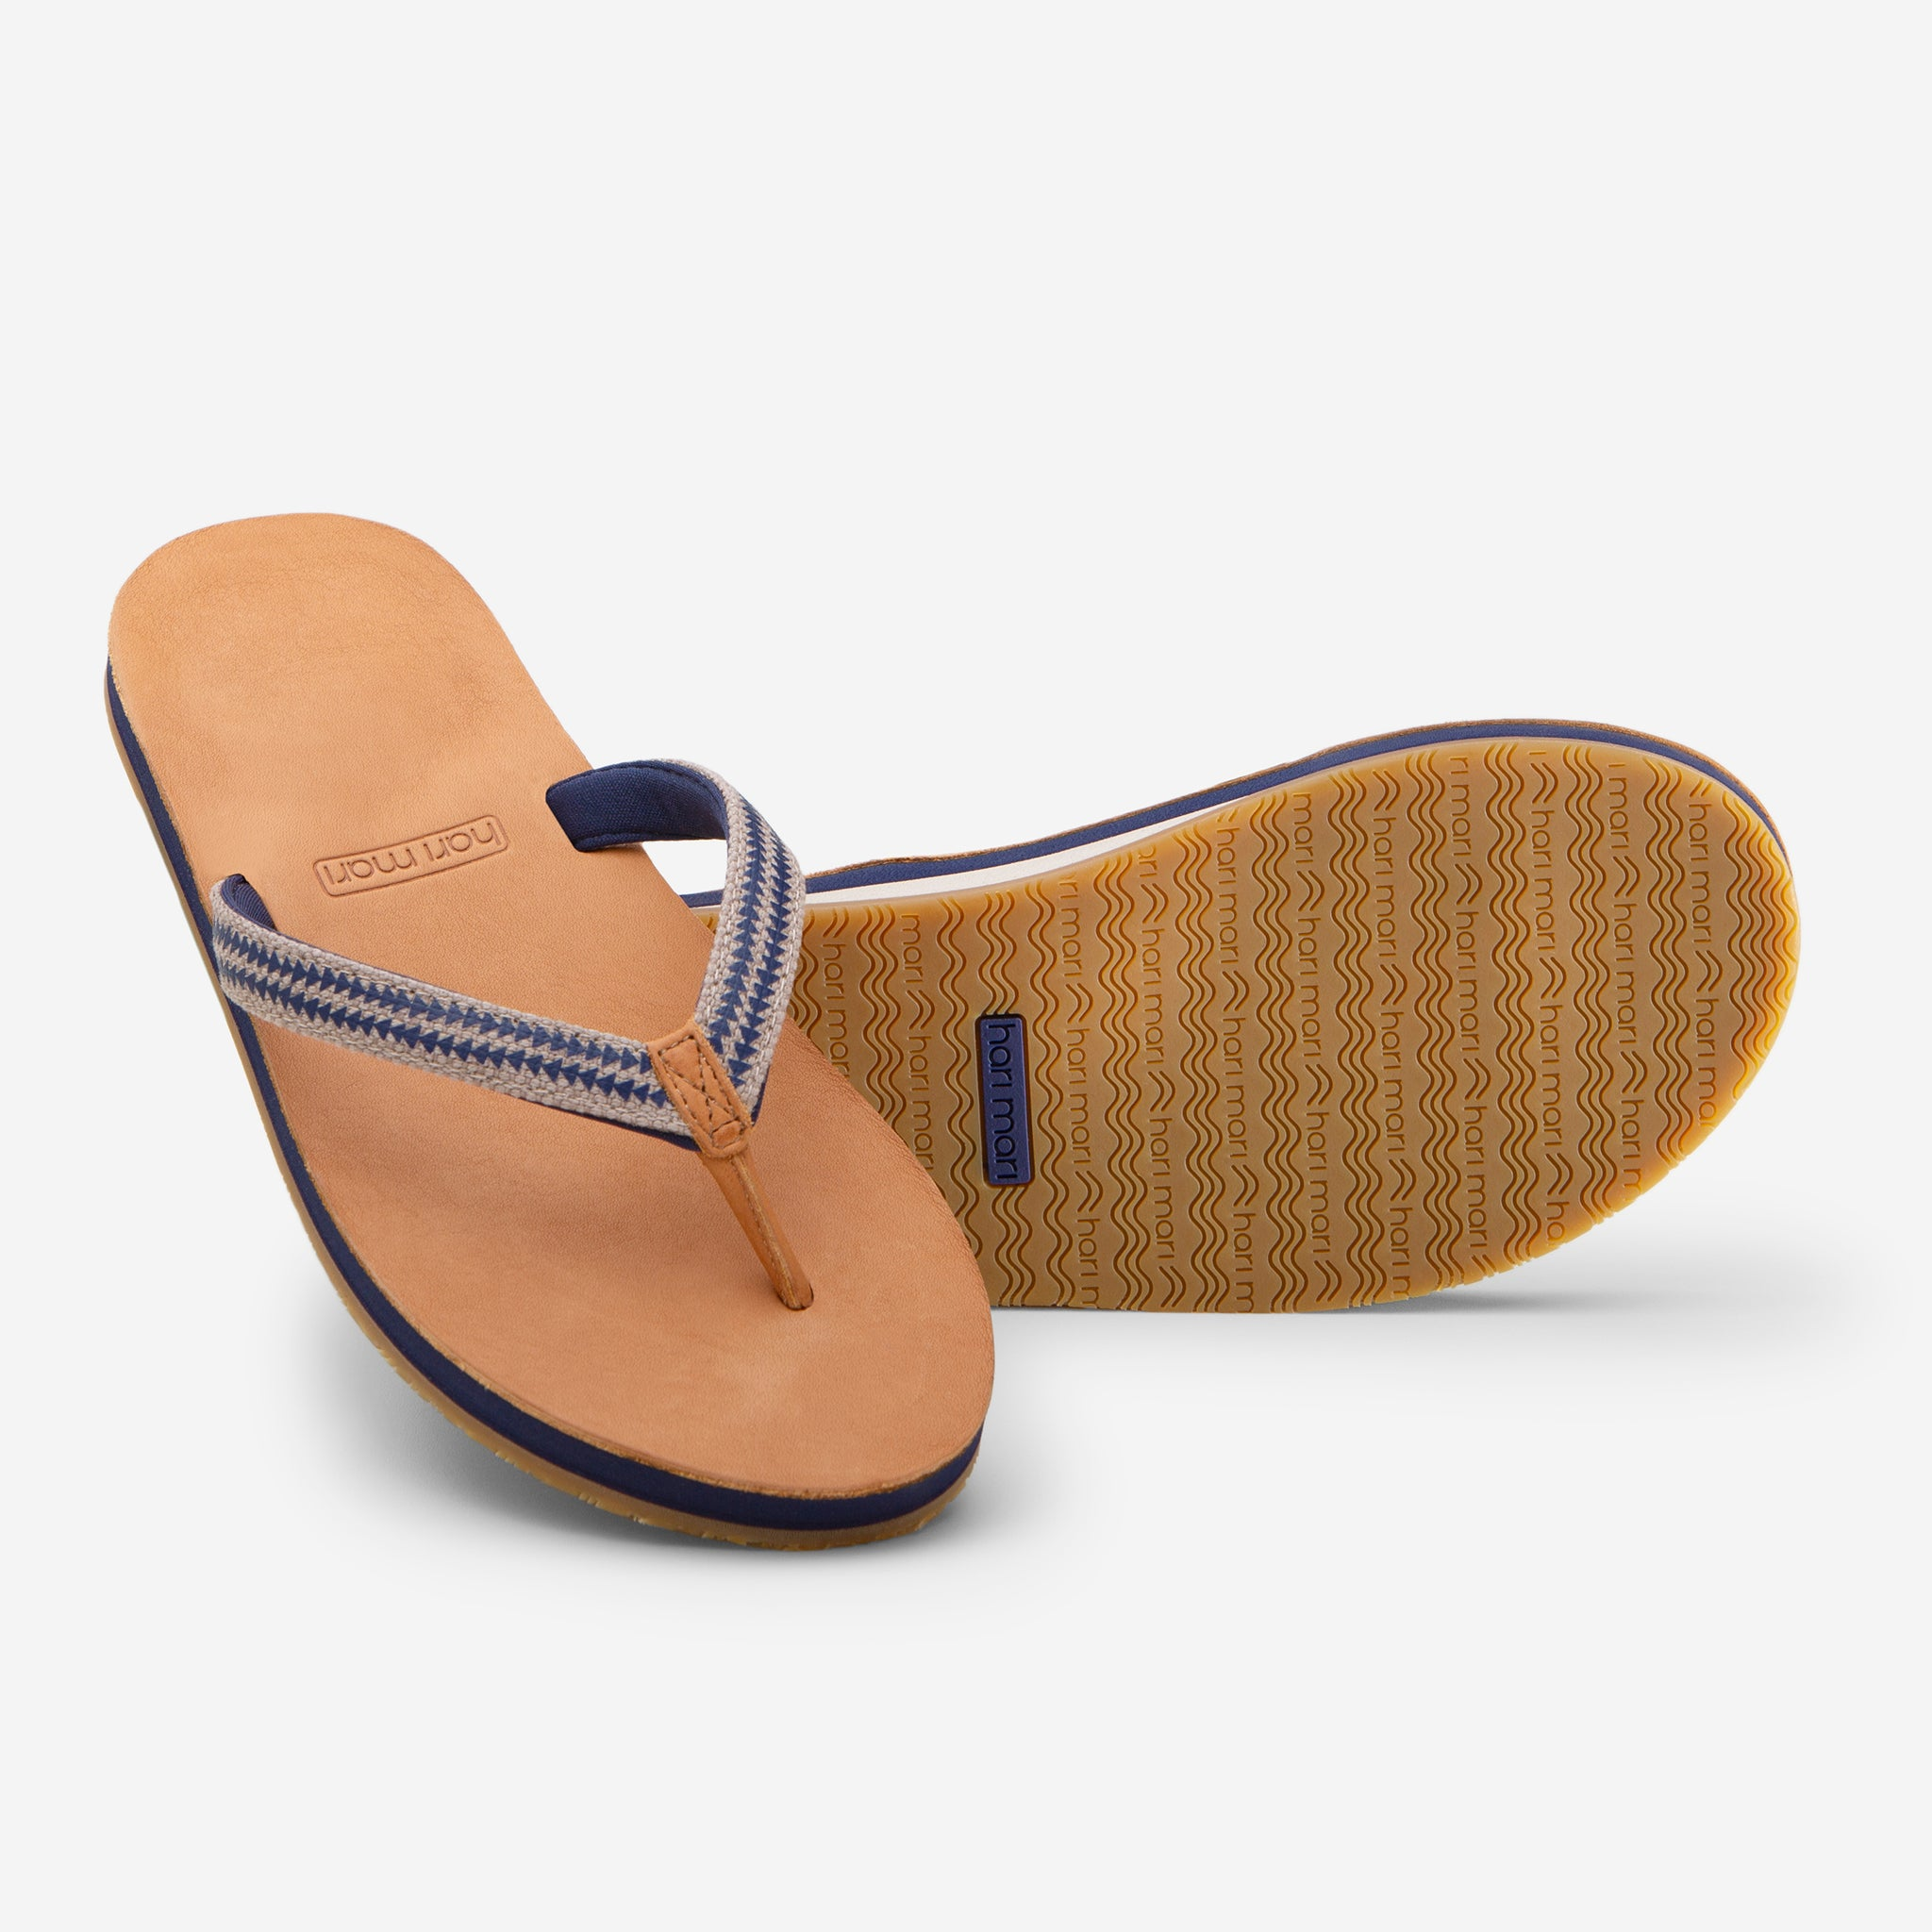 Hari Mari Women's Fields Puebla flip flops in wheat/navy on white background showing flip flop and bottom of flip flop rubber outsole